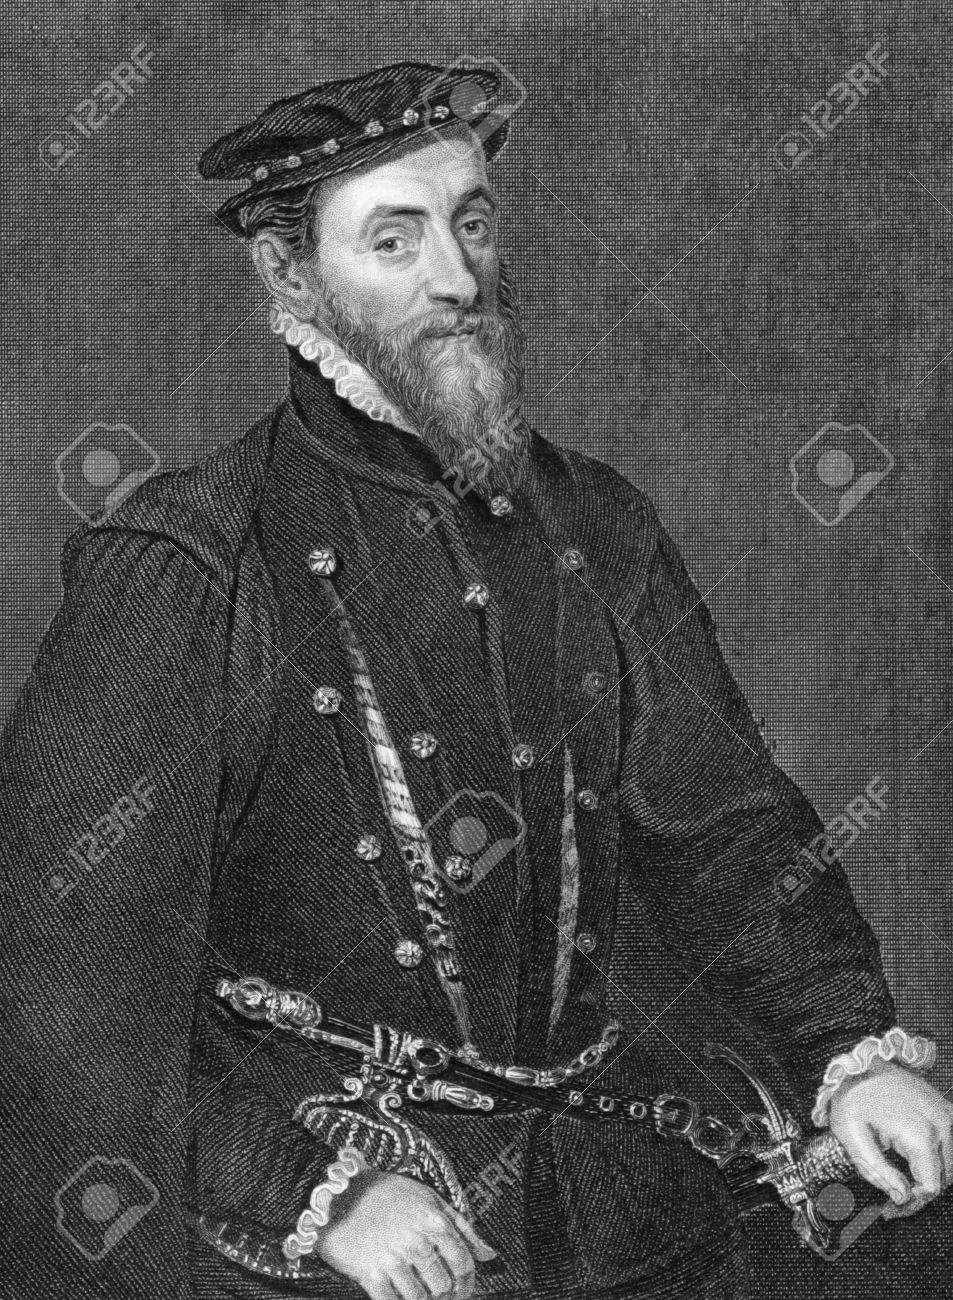 Thomas Gresham (1519-1579) on engraving from 1838. English merchant and financier who worked for King Edward VI and Queens Mary I and Elizabeth I. Engraved by H.Robinson after a painting by Holbein and published by J.Tallis & Co. Stock Photo - 9488711